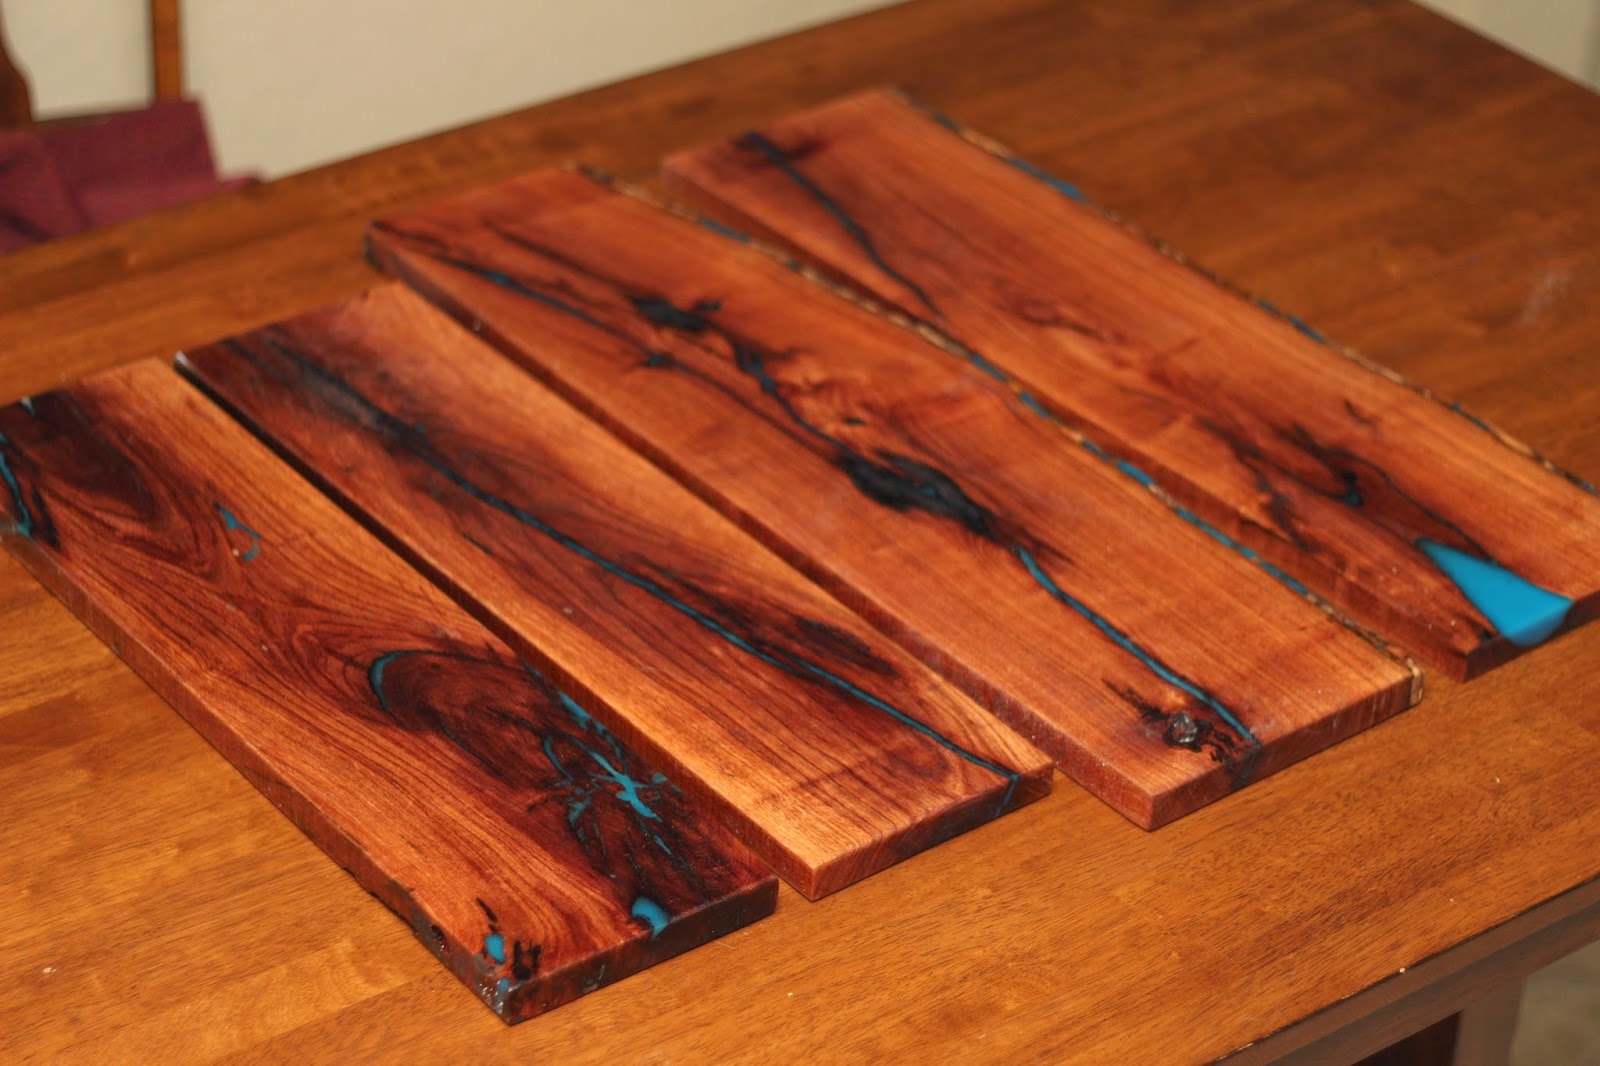 Glow In The Dark Resin rustic diy projects: how to: glow in the dark resin inlay shelves